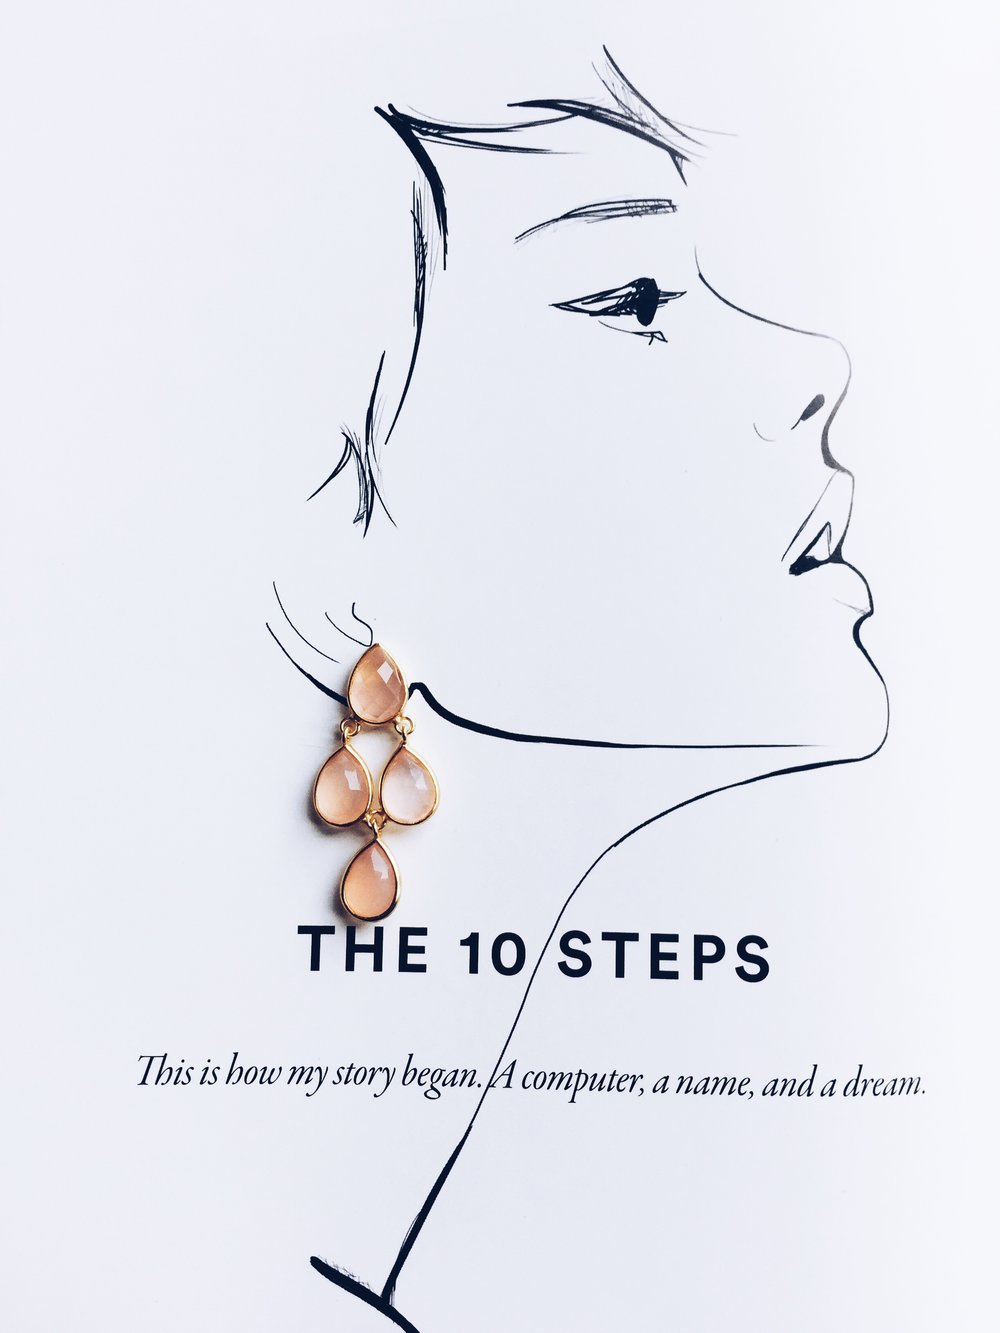 I finally read  Garance Dore's book  cover to cover, and launched some gorgeous new earrings, including these beautiful rose quartz ones at  Bombay Taxi Boutique .